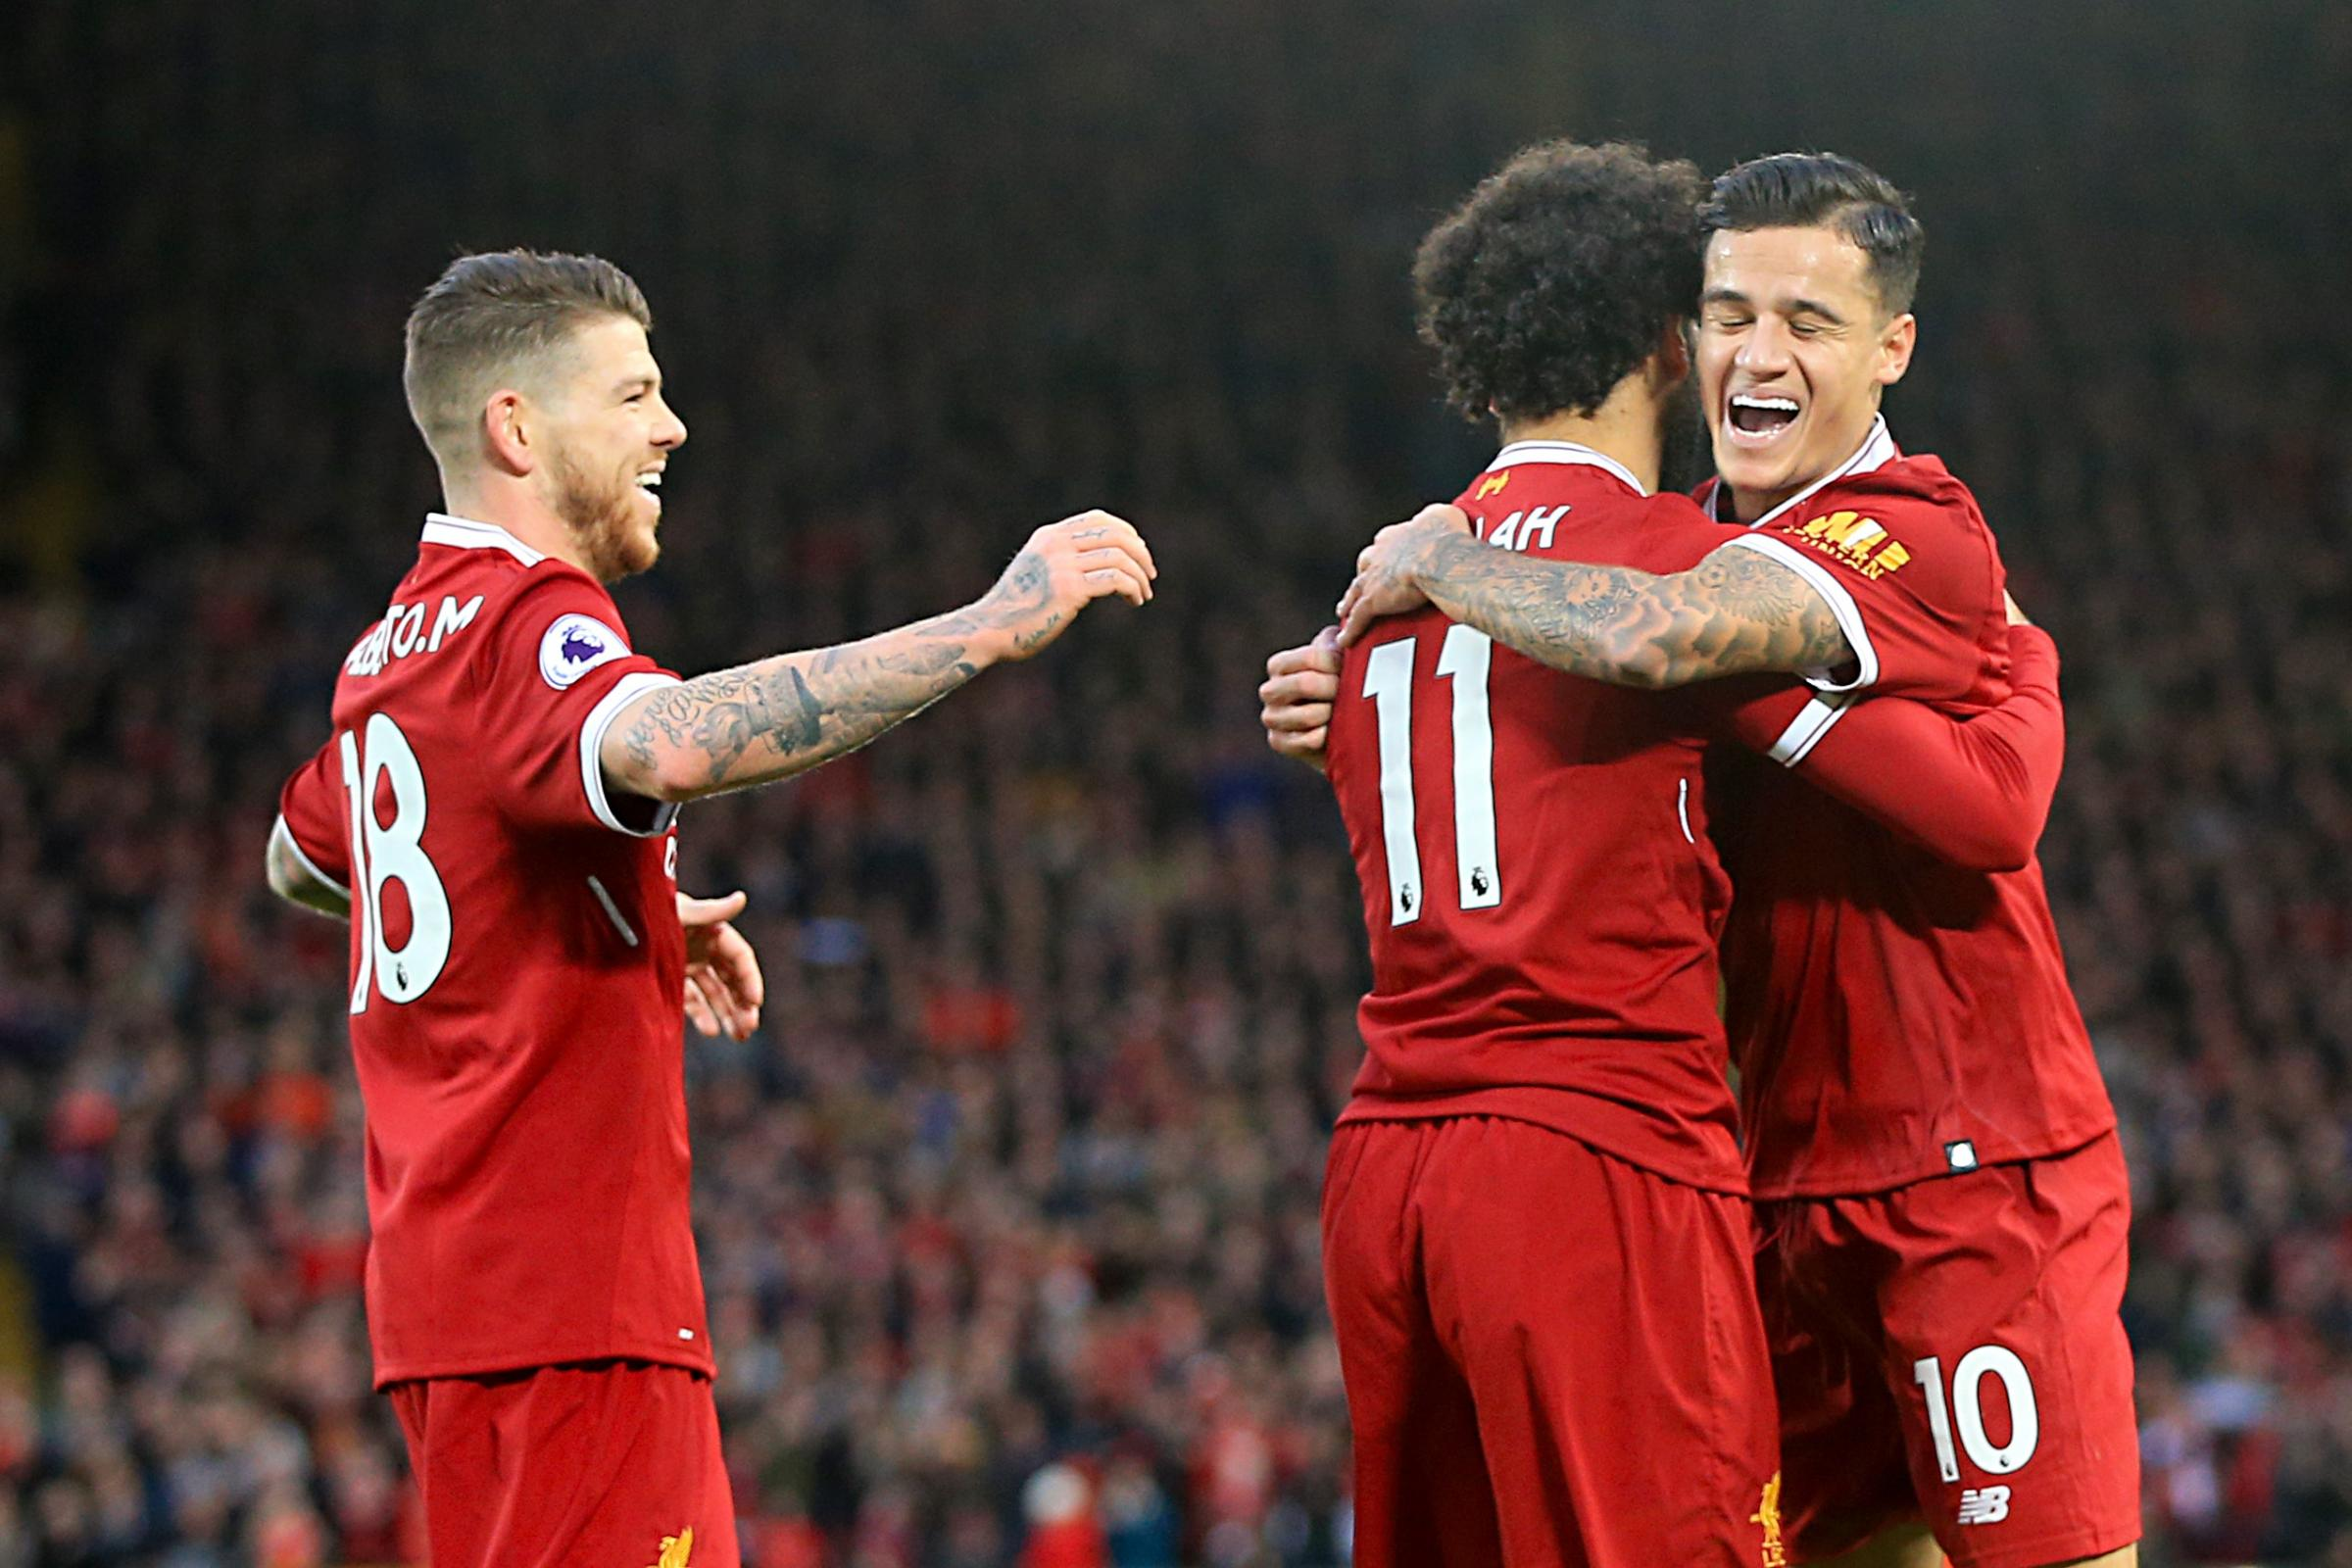 Mohamed Salah celebrates scoring with Philippe Coutinho, right (Peter Byrne/PA Wire)